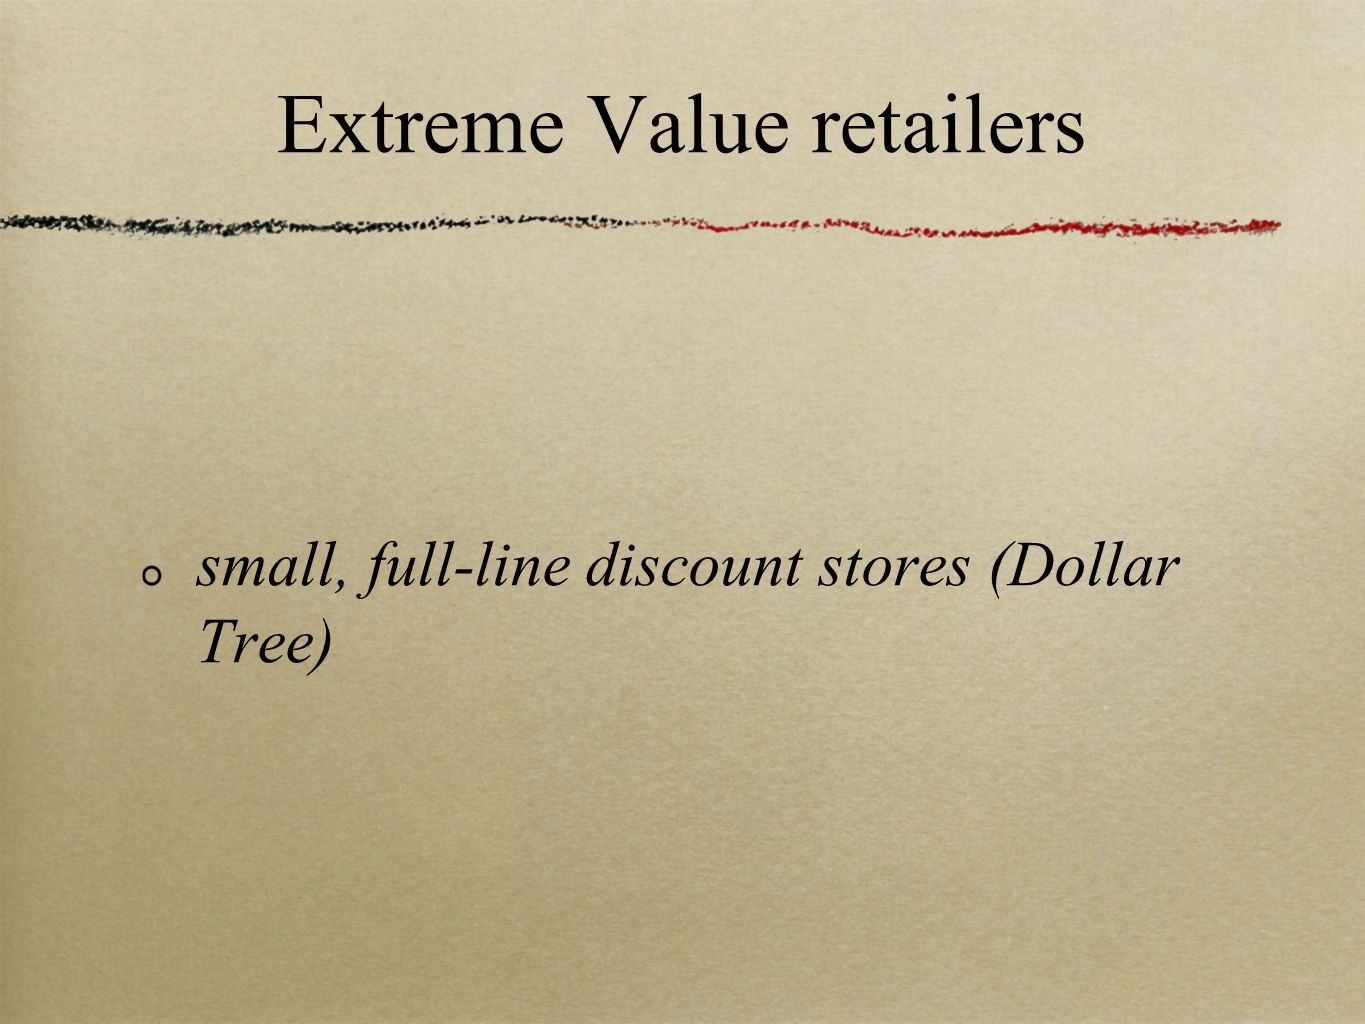 Extreme Value retailers